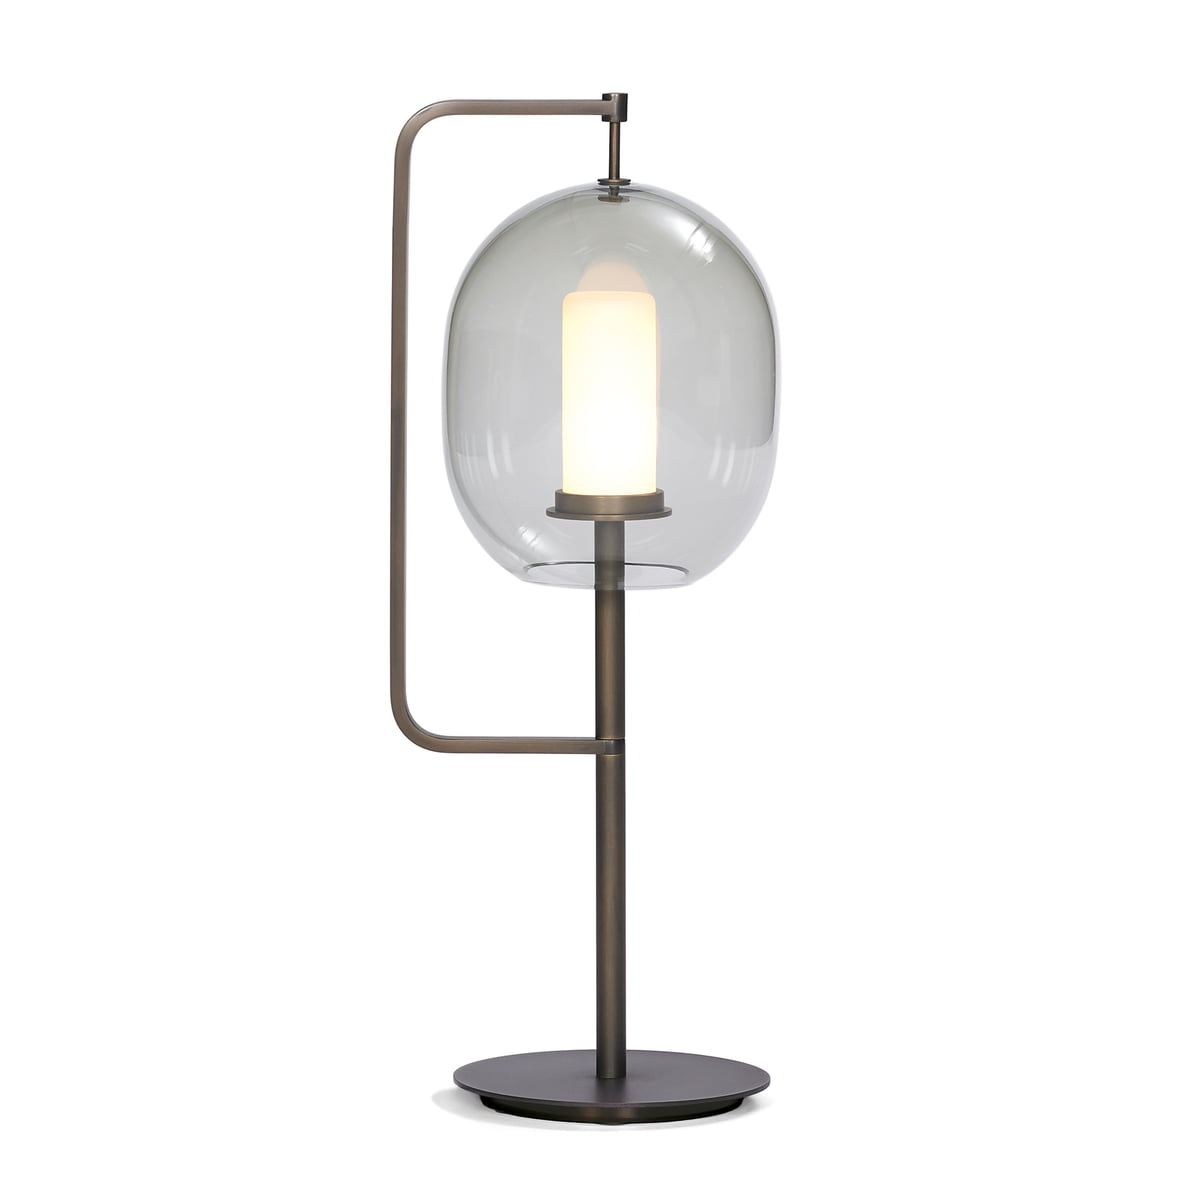 Lantern Light Table Lamp By ClassiCon In Brass